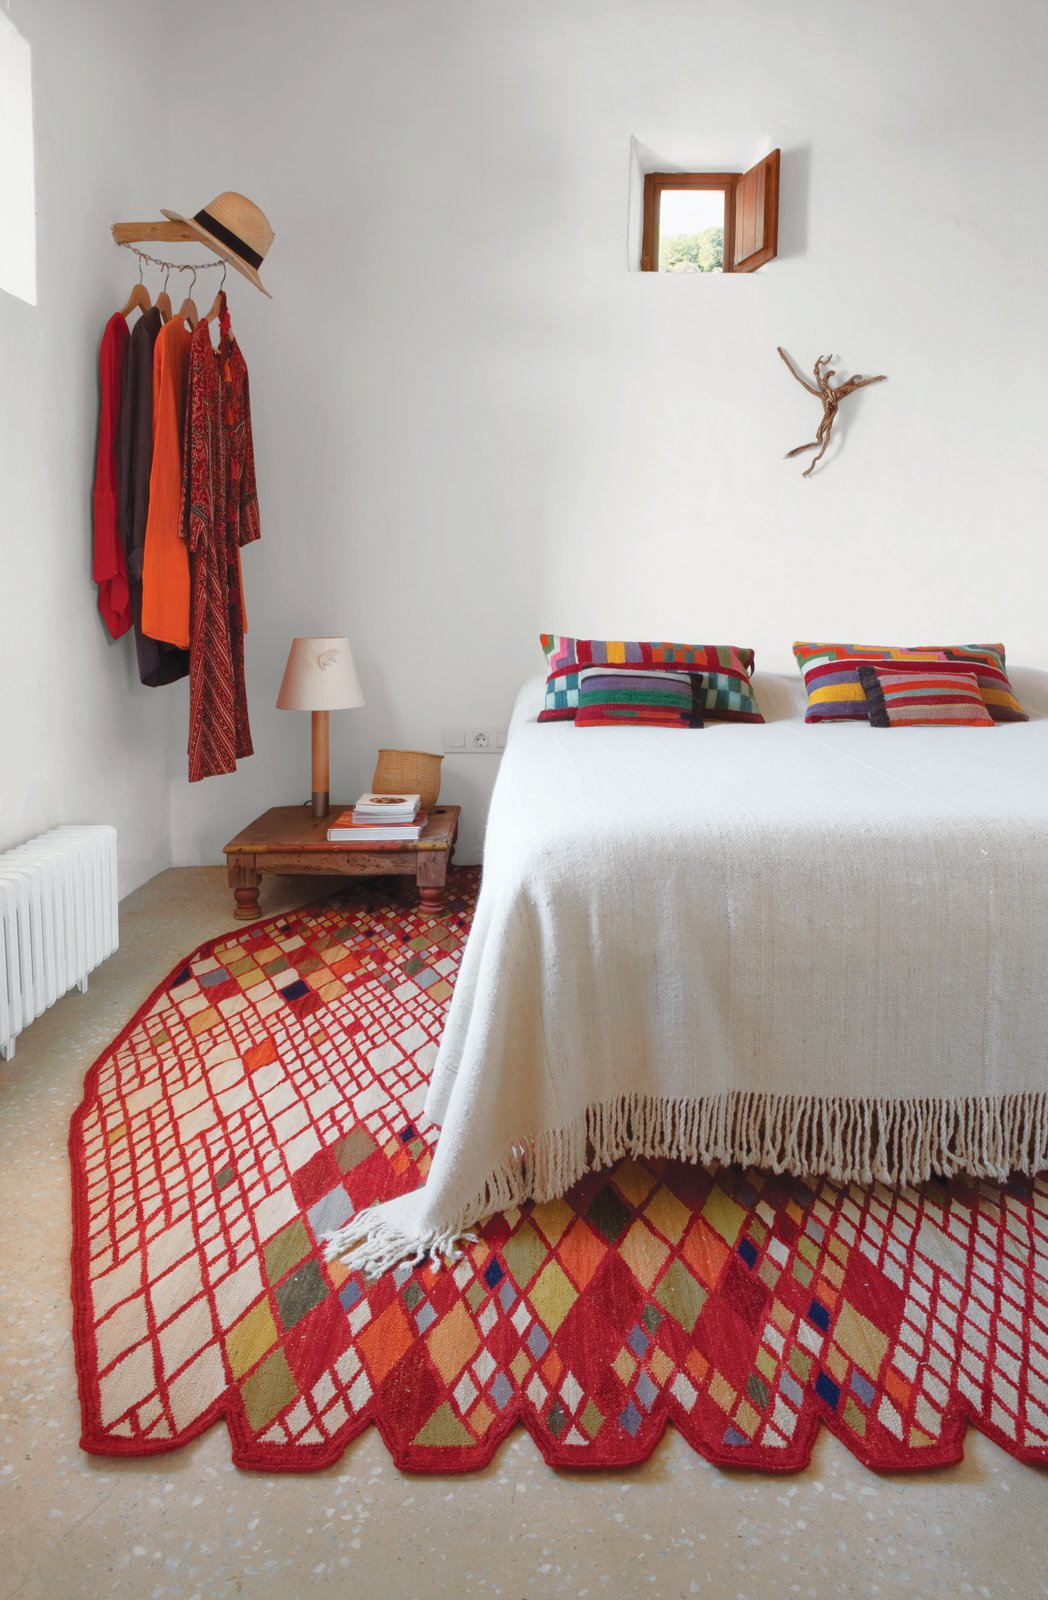 Bedroom, Bed, Night Stands, Table Lighting, and Rug Floor An earlier version of the Losanges rug, part of Marquina's 2011 collection, anchors the master bedroom of Nani Marquina's Ibiza home. Photo by Albert Font.  Photo 5 of 9 in When to Save Versus Splurge in Your Bedroom Revamp